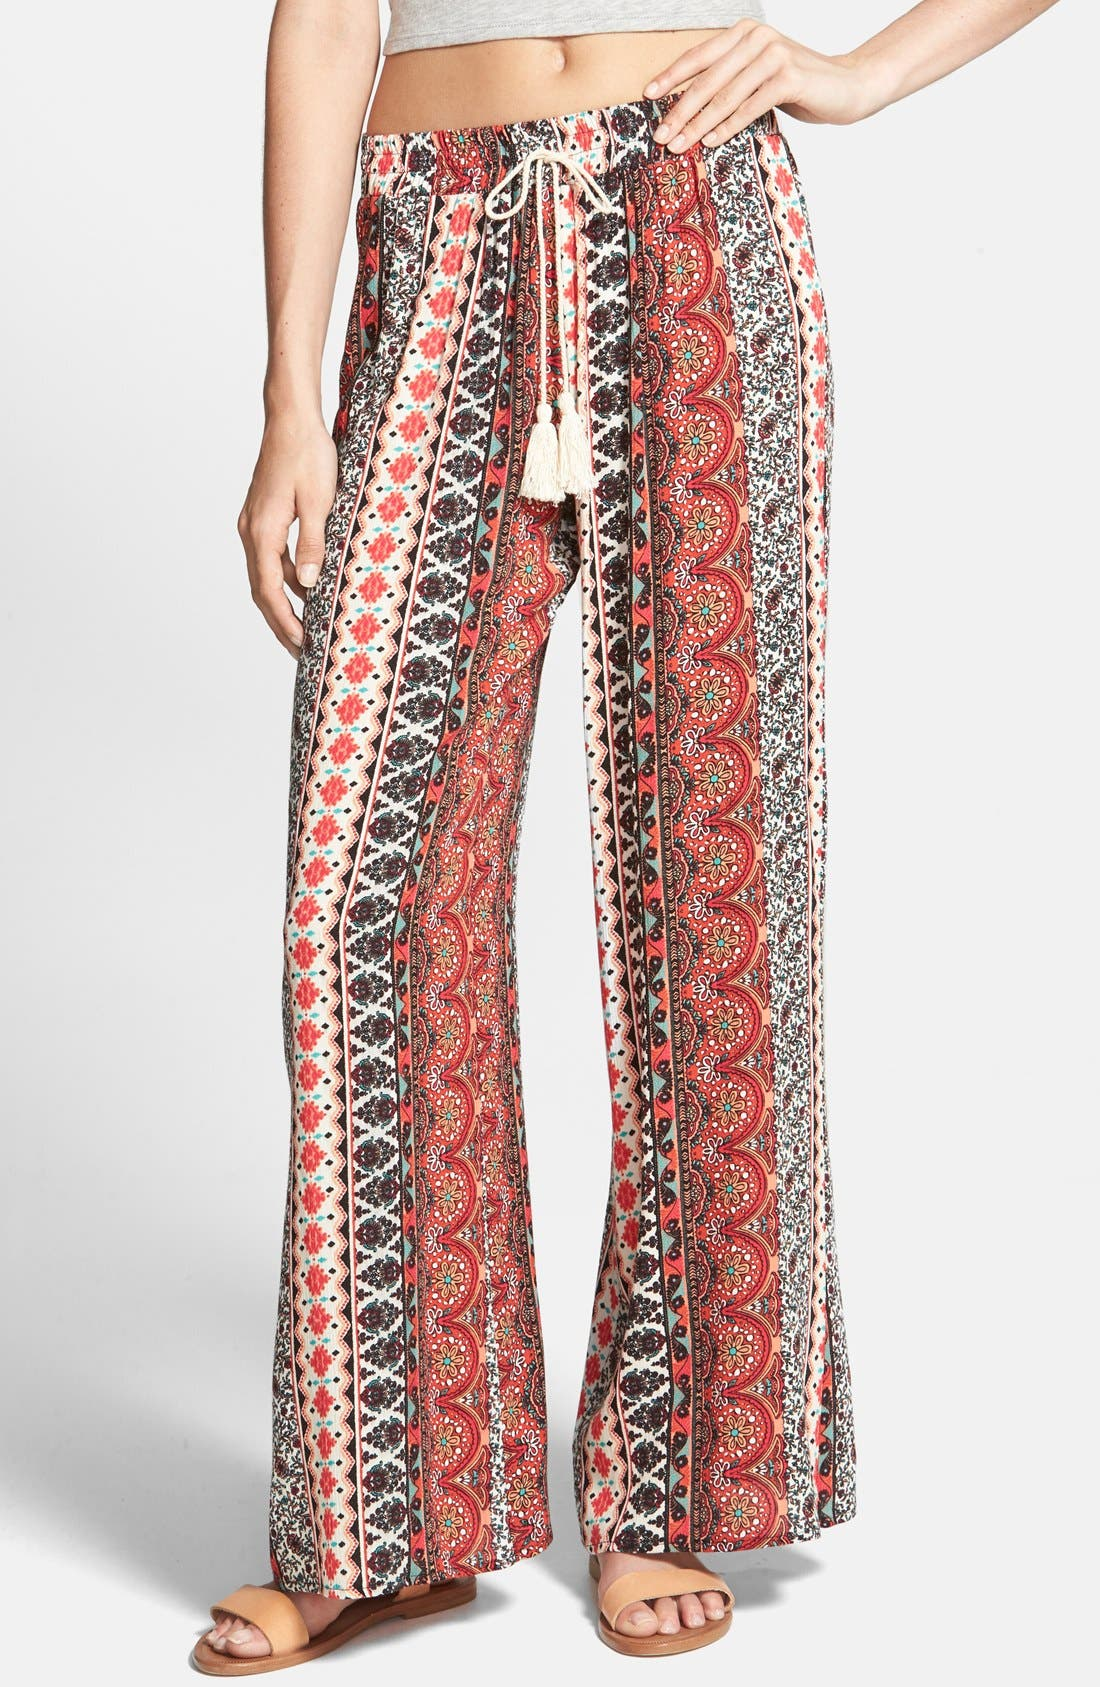 Alternate Image 1 Selected - h.i.p. Print Gauze Palazzo Pants (Juniors)